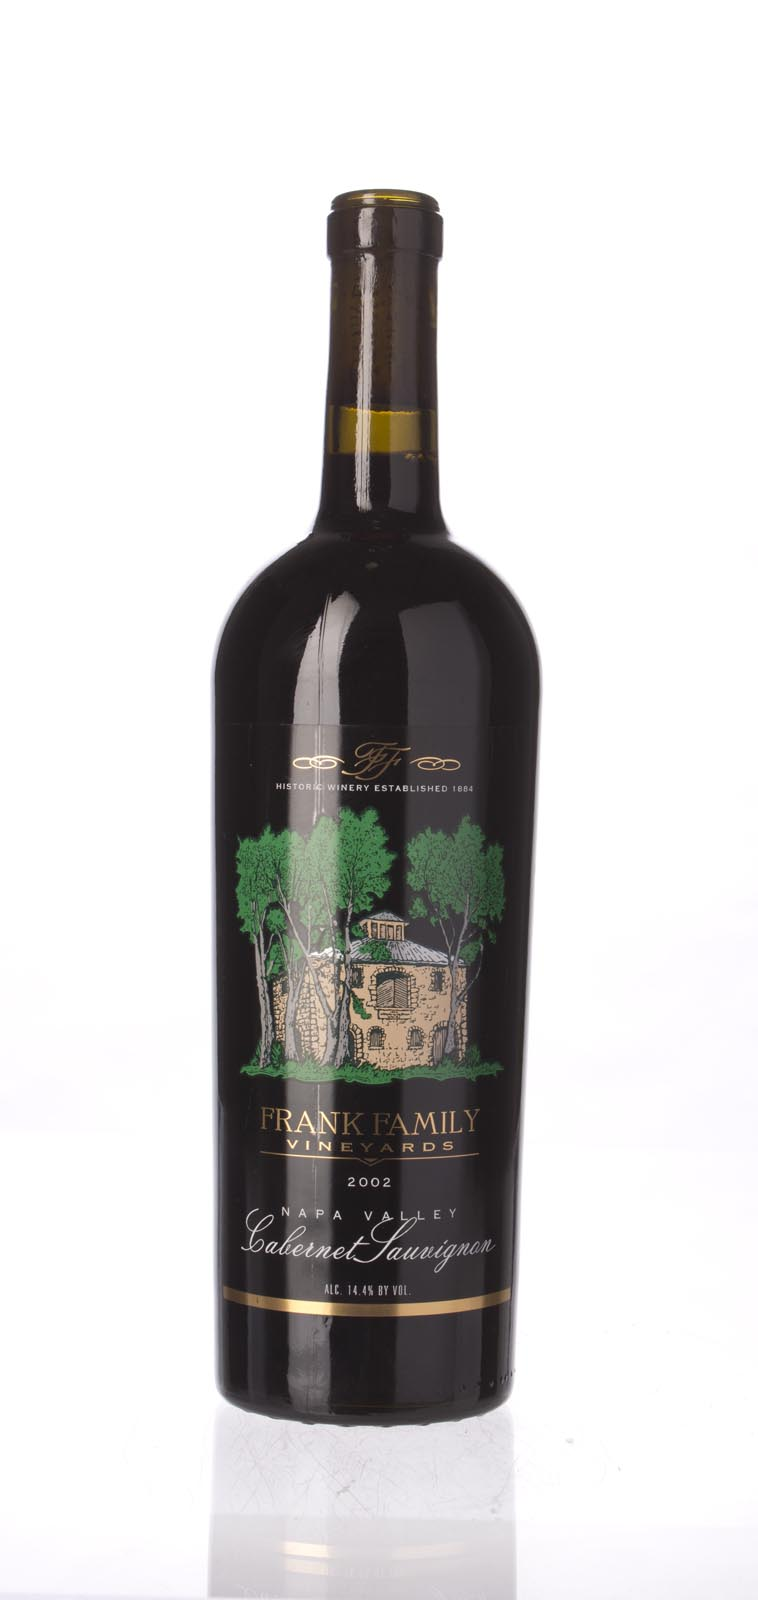 Frank Family Cabernet Sauvignon Napa Valley 2002, 750ml () from The BPW - Merchants of rare and fine wines.